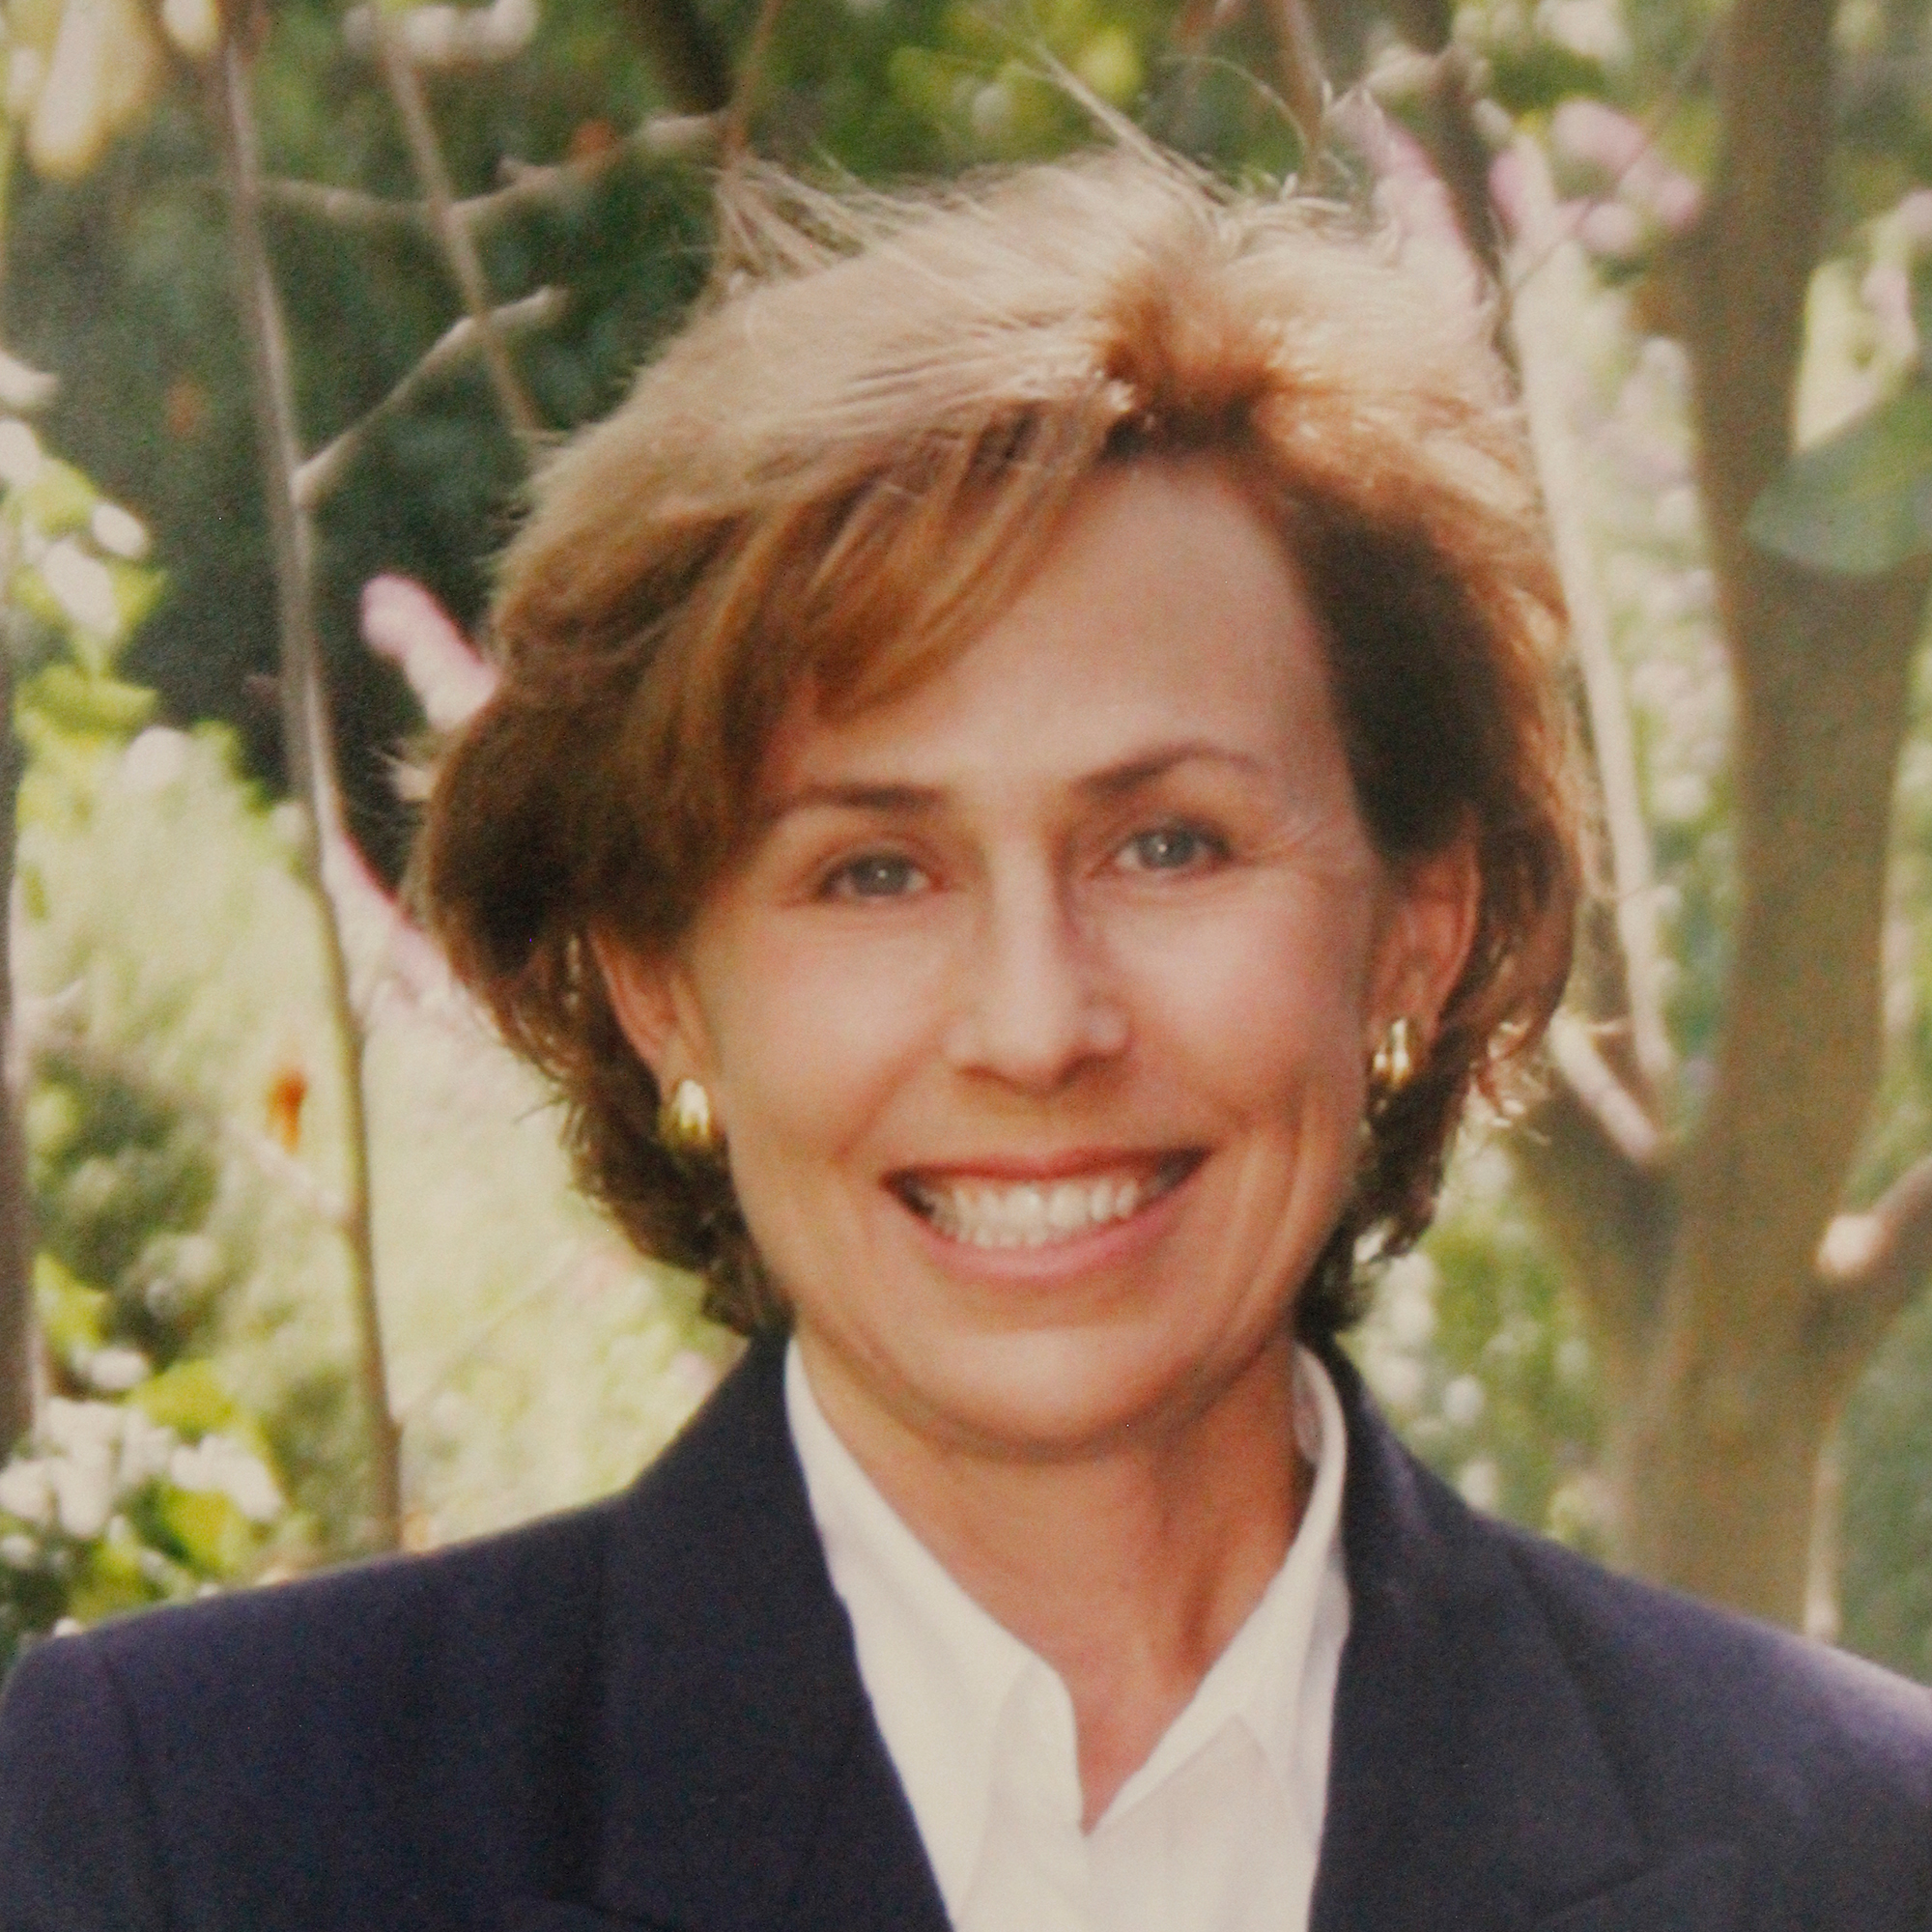 Dr. Nancy Hager, cCARE Connects Foundation Board Member